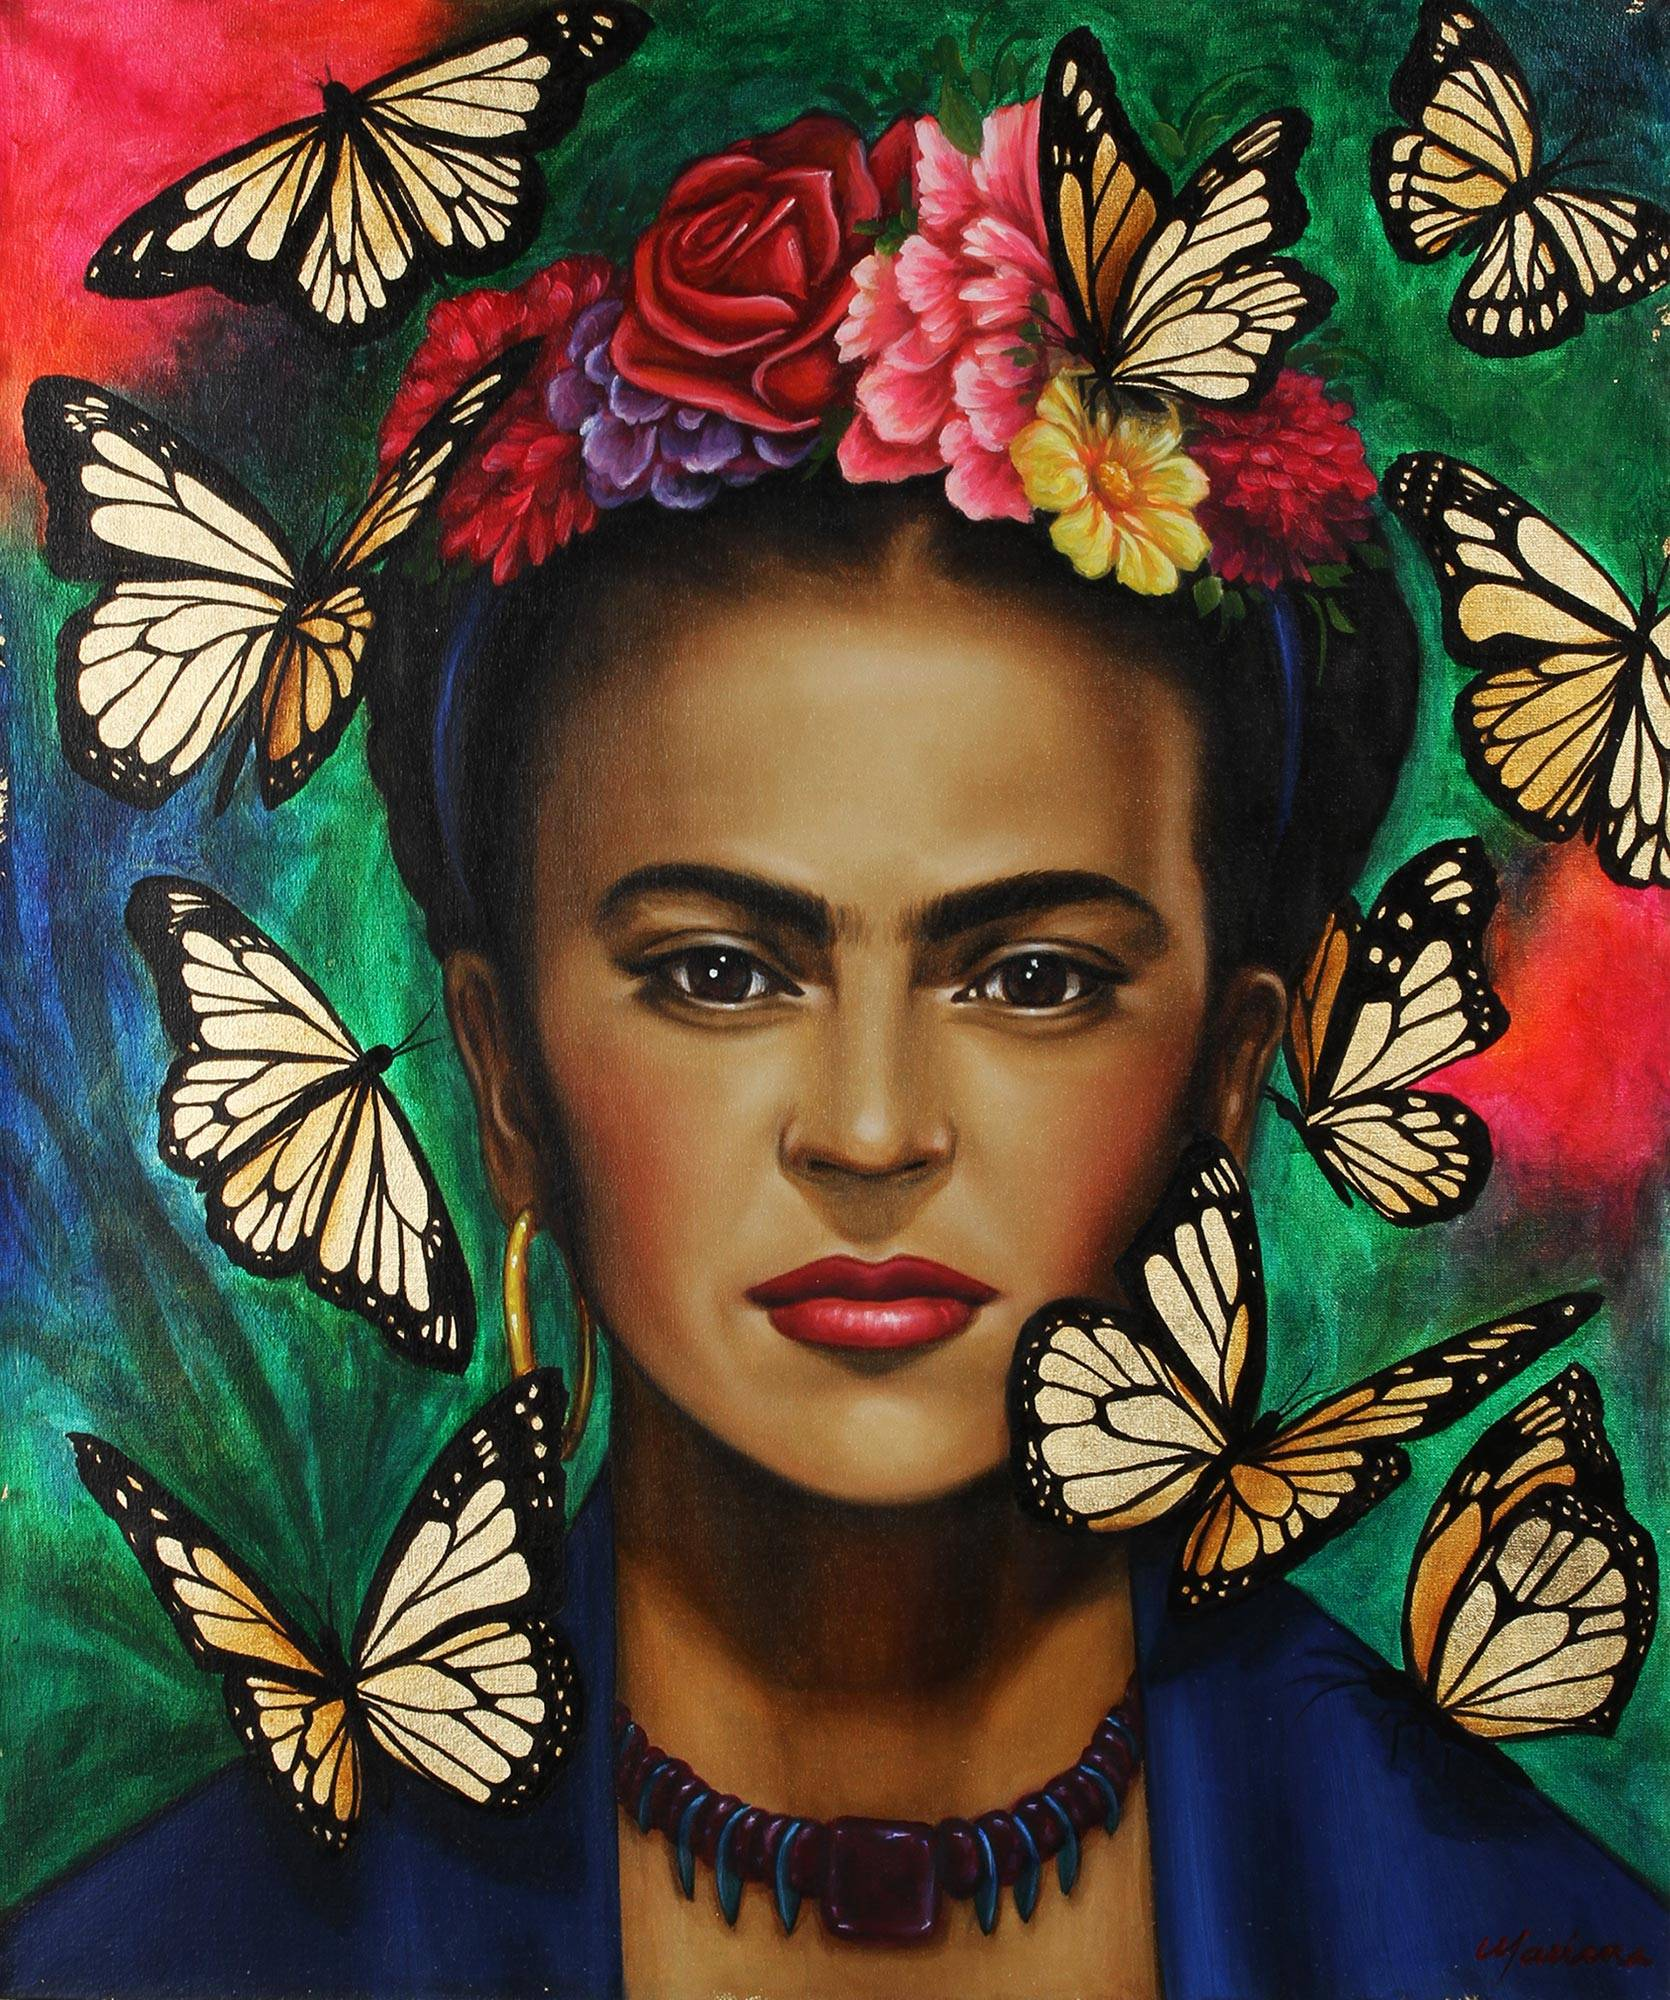 Signed Portrait Painting of Frida Kahlo from Mexico